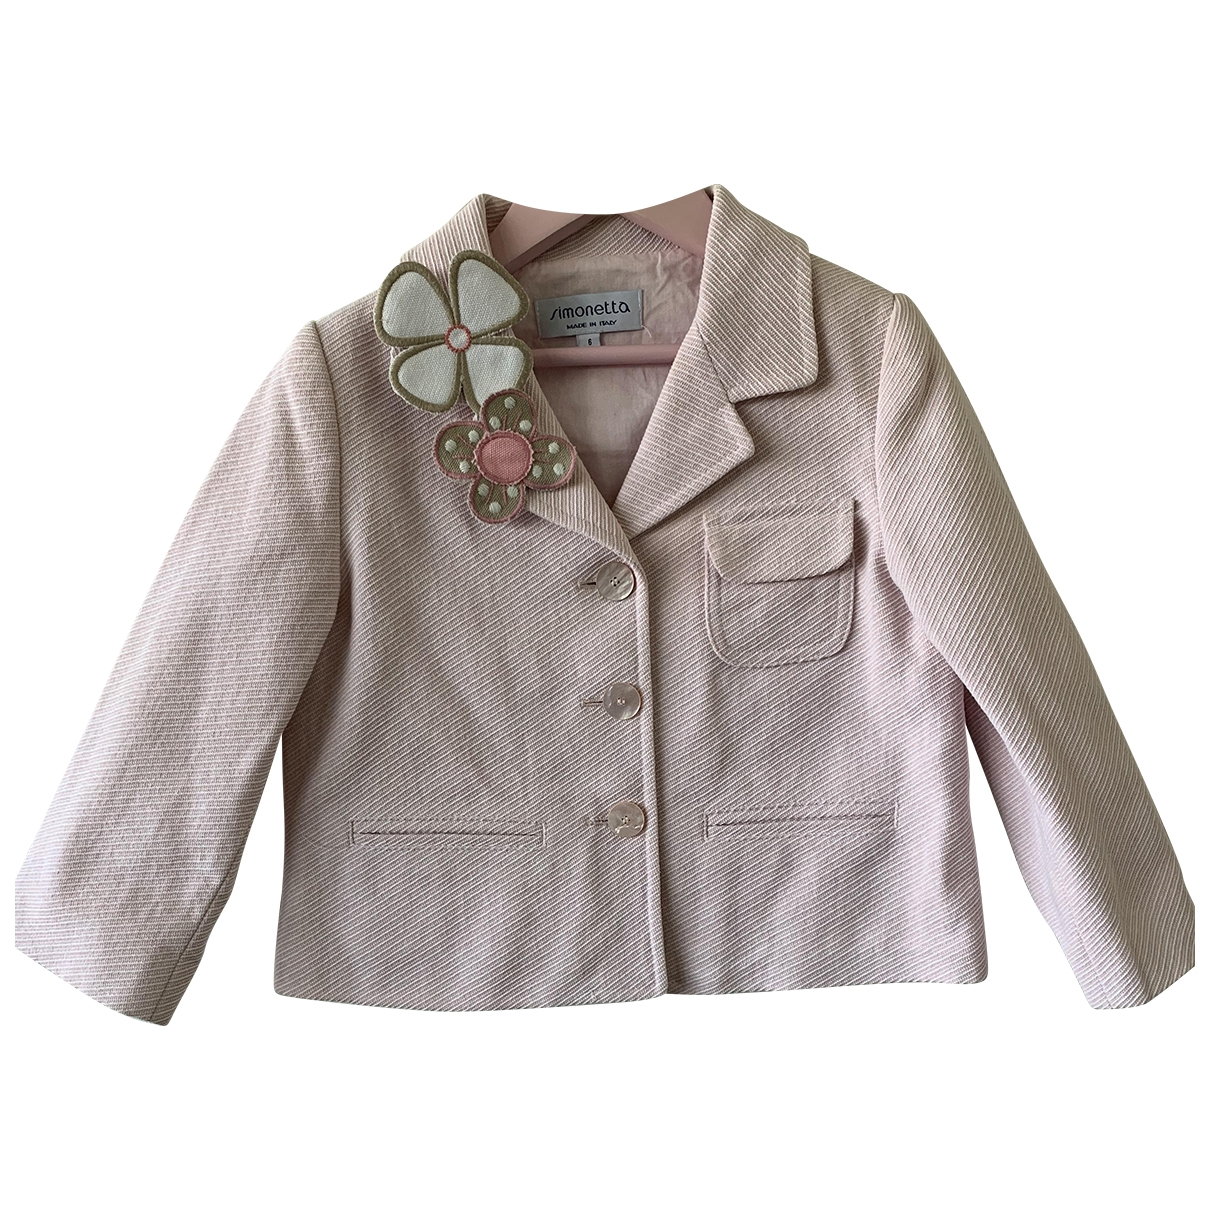 Simonetta \N Pink Cotton jacket & coat for Kids 6 years - up to 114cm FR